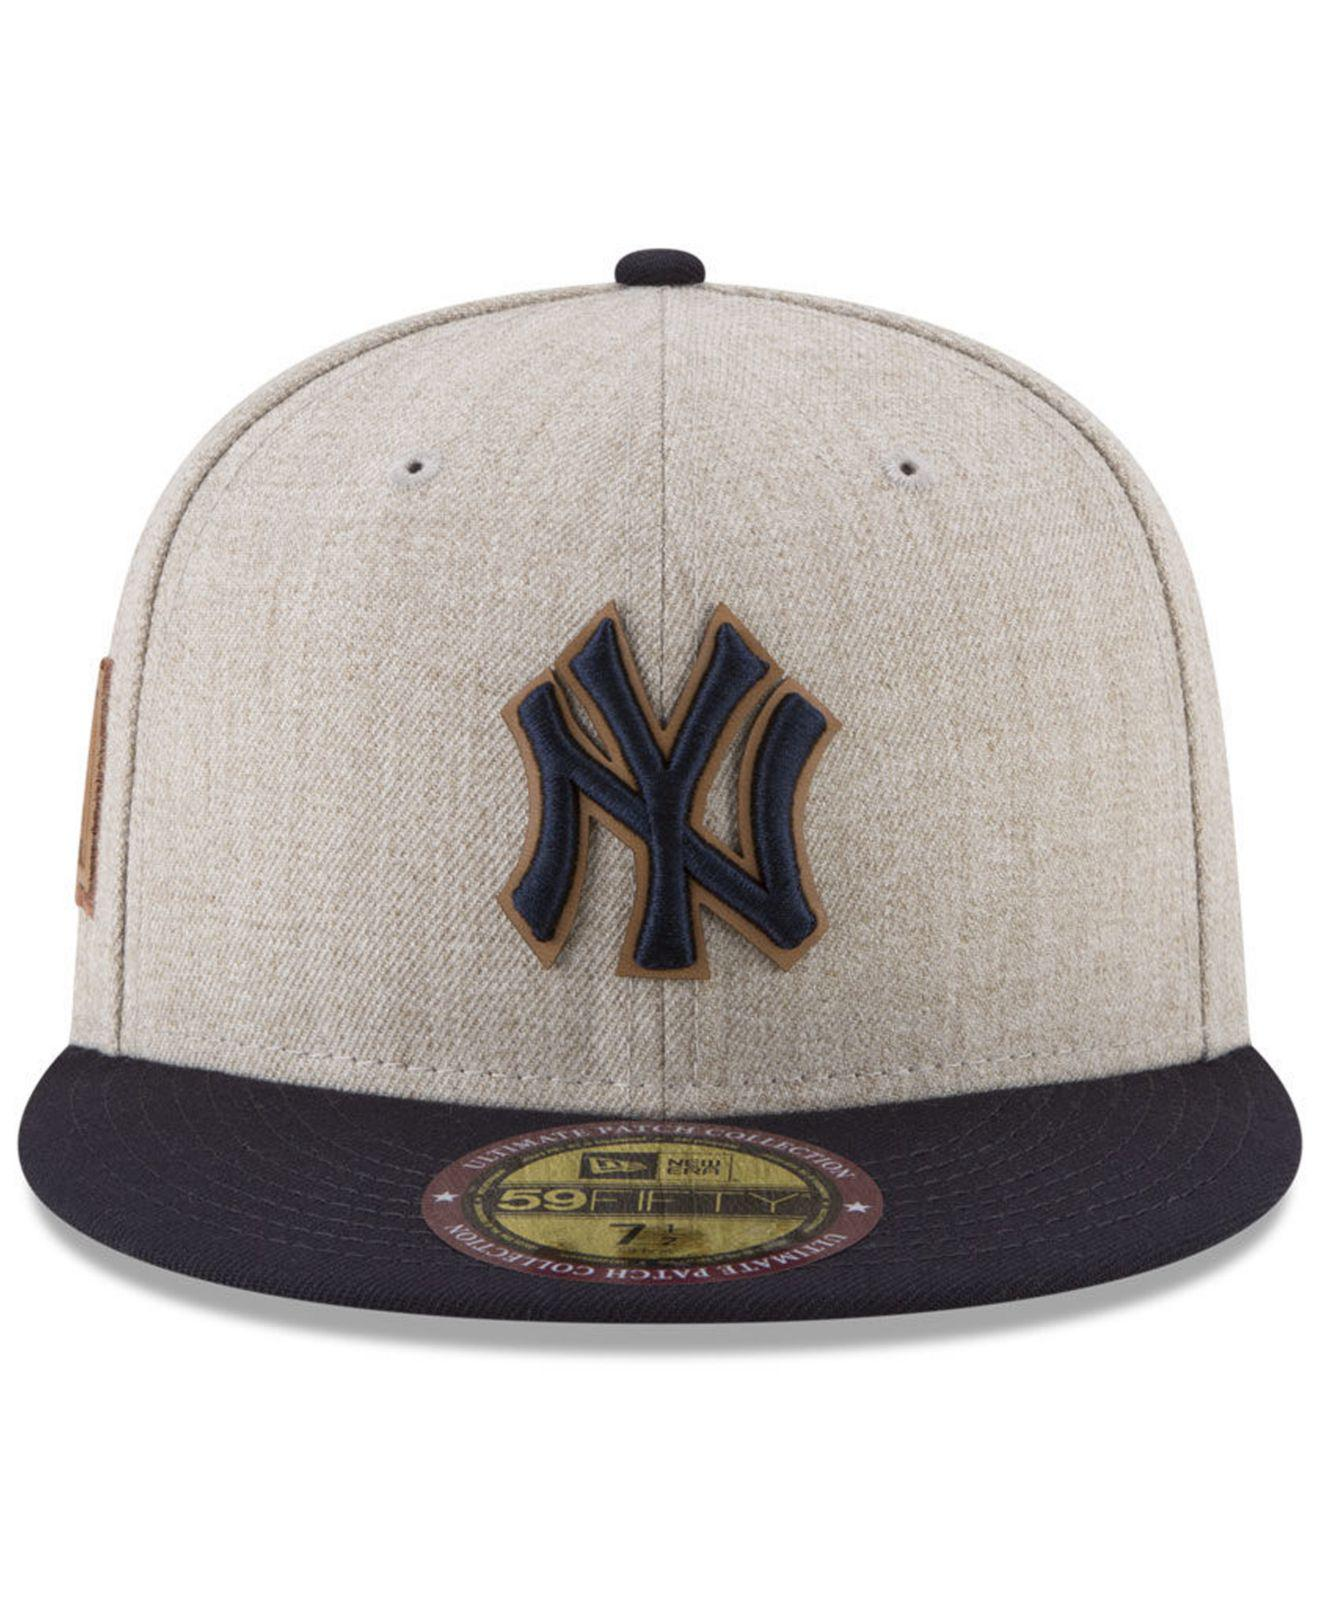 reputable site eea48 2ade4 KTZ New York Yankees Leather Ultimate Patch Collection 59fifty ...